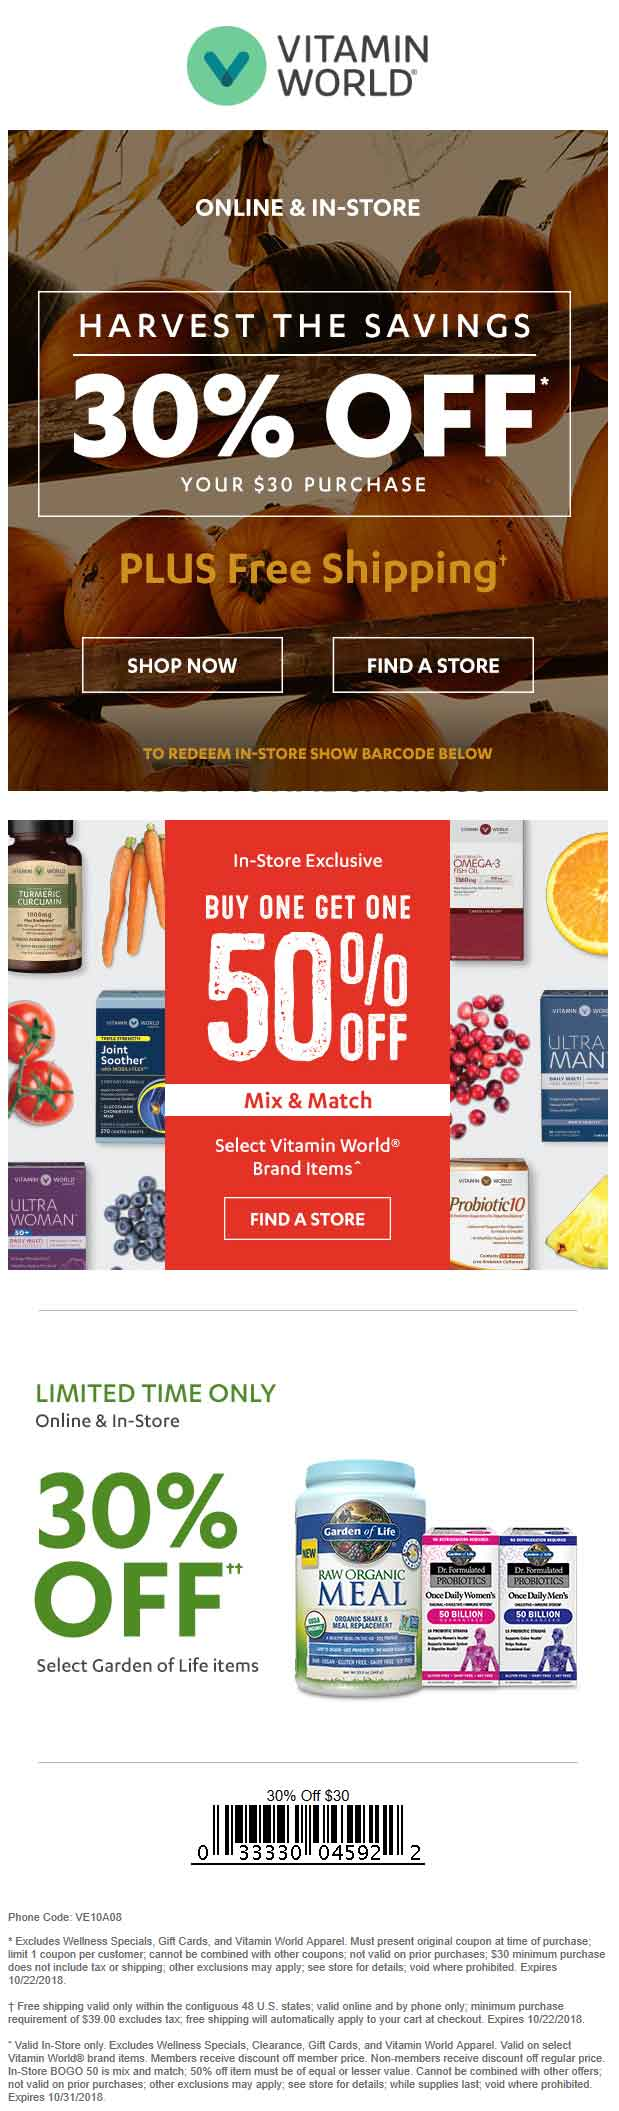 Vitamin World Coupon June 2019 30% off $30 at Vitamin World, or online via promo code VE10A08